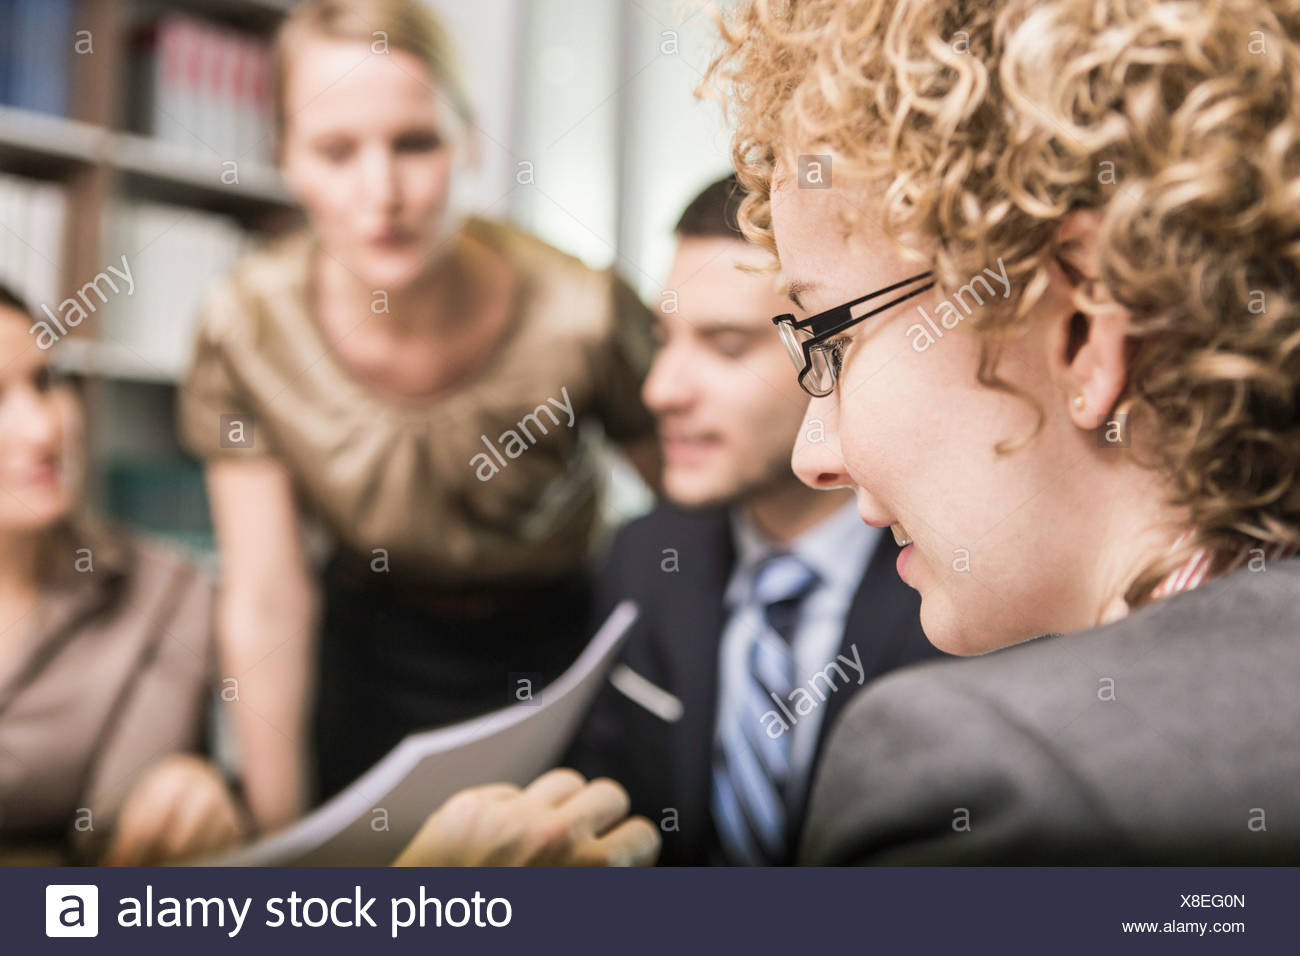 Female lawyer with blonde curly hair in meeting - Stock Image